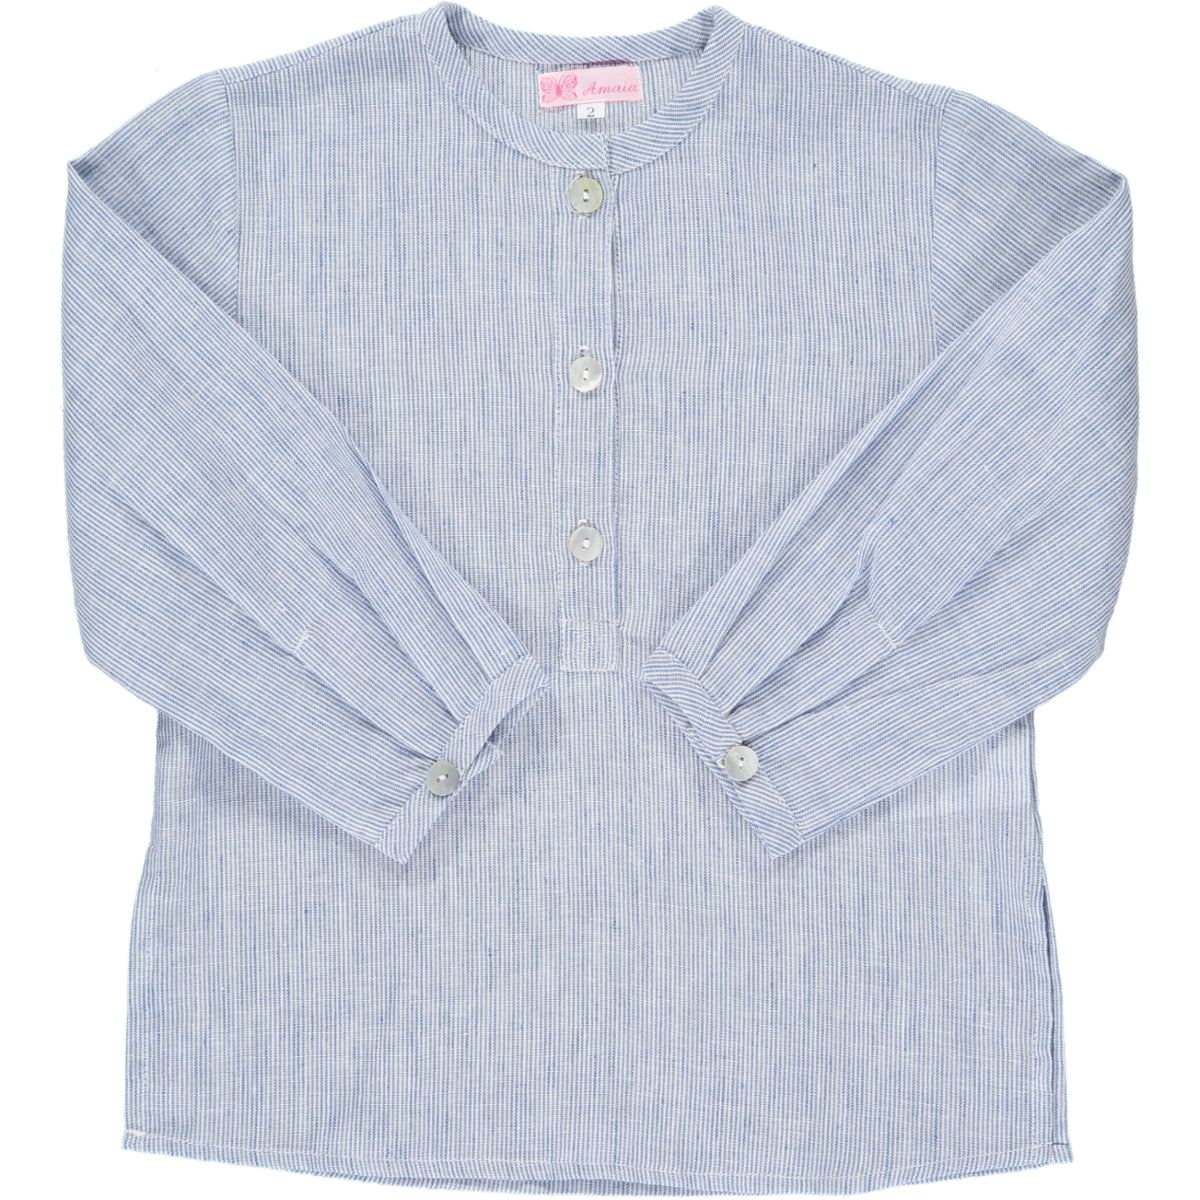 Victor Shirt Blue Stripe